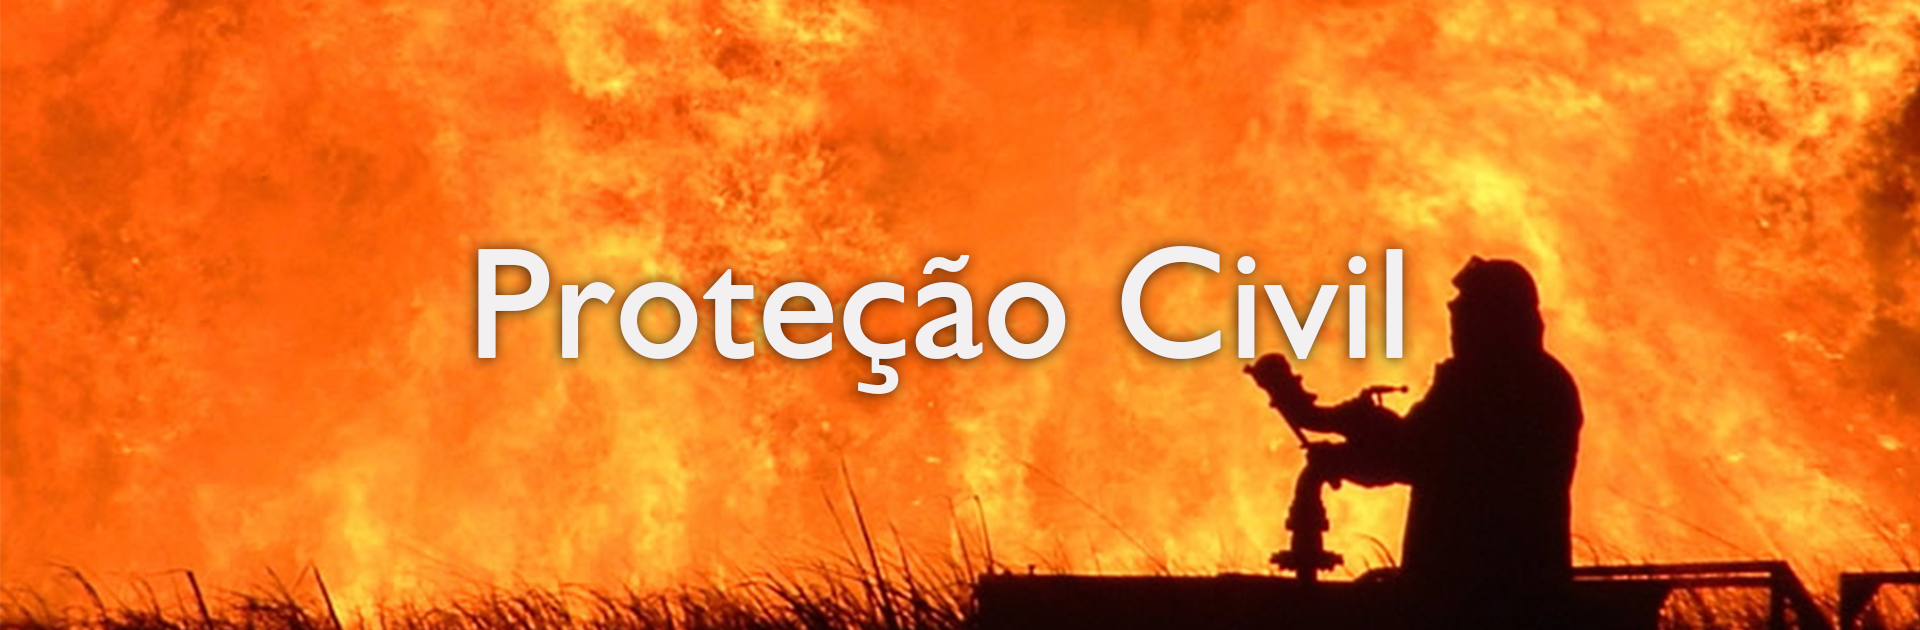 banner_protecao-civil.png